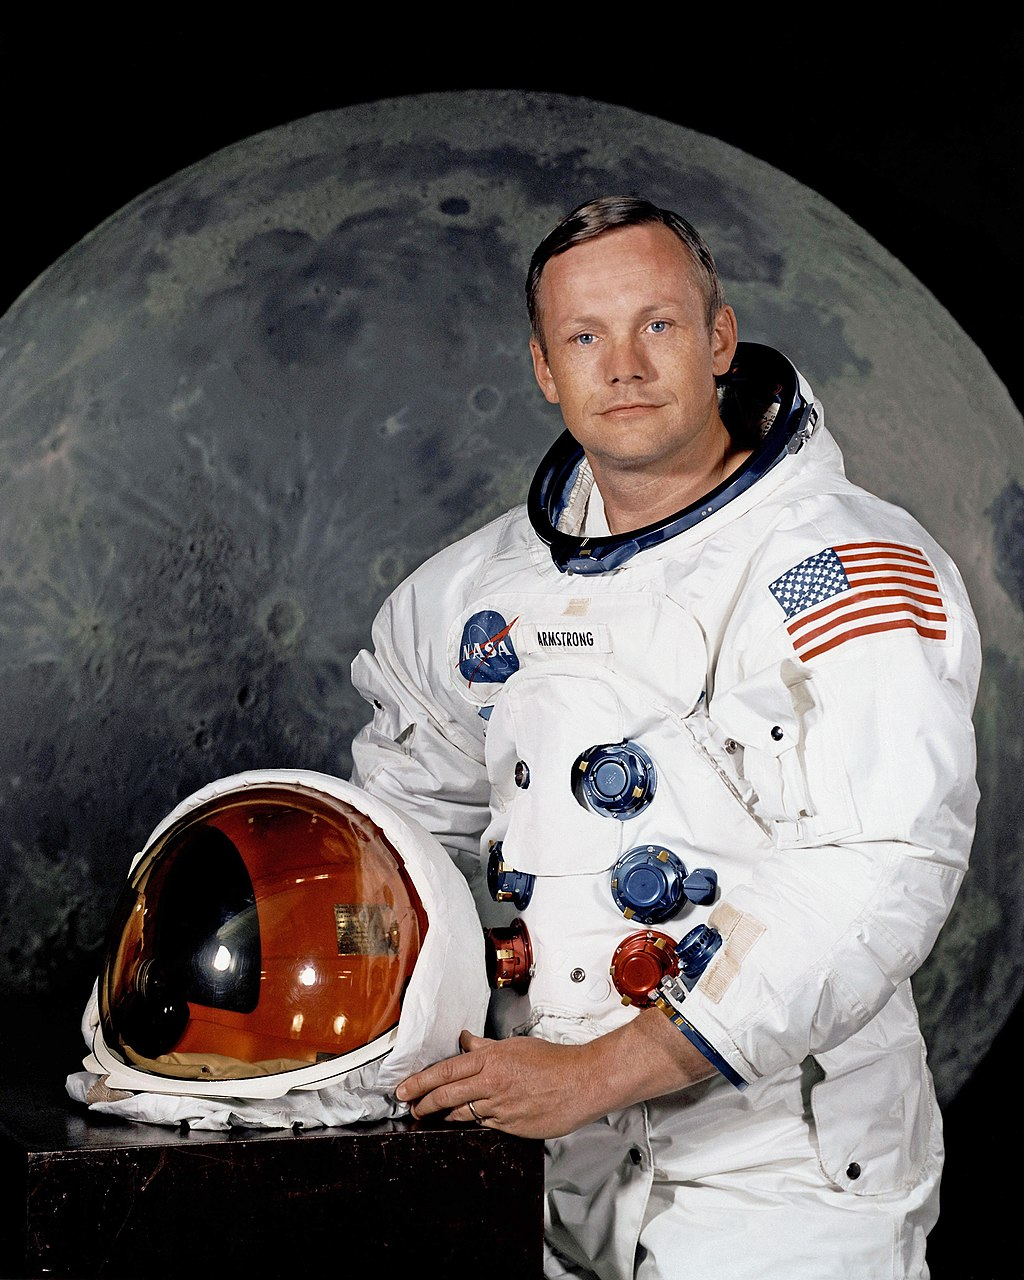 /upload.wikimedia.org/wikipedia/commons/thumb/0/0d/Neil_Armstrong_pose.jpg/1024px-Neil_Armstrong_pose.jpg